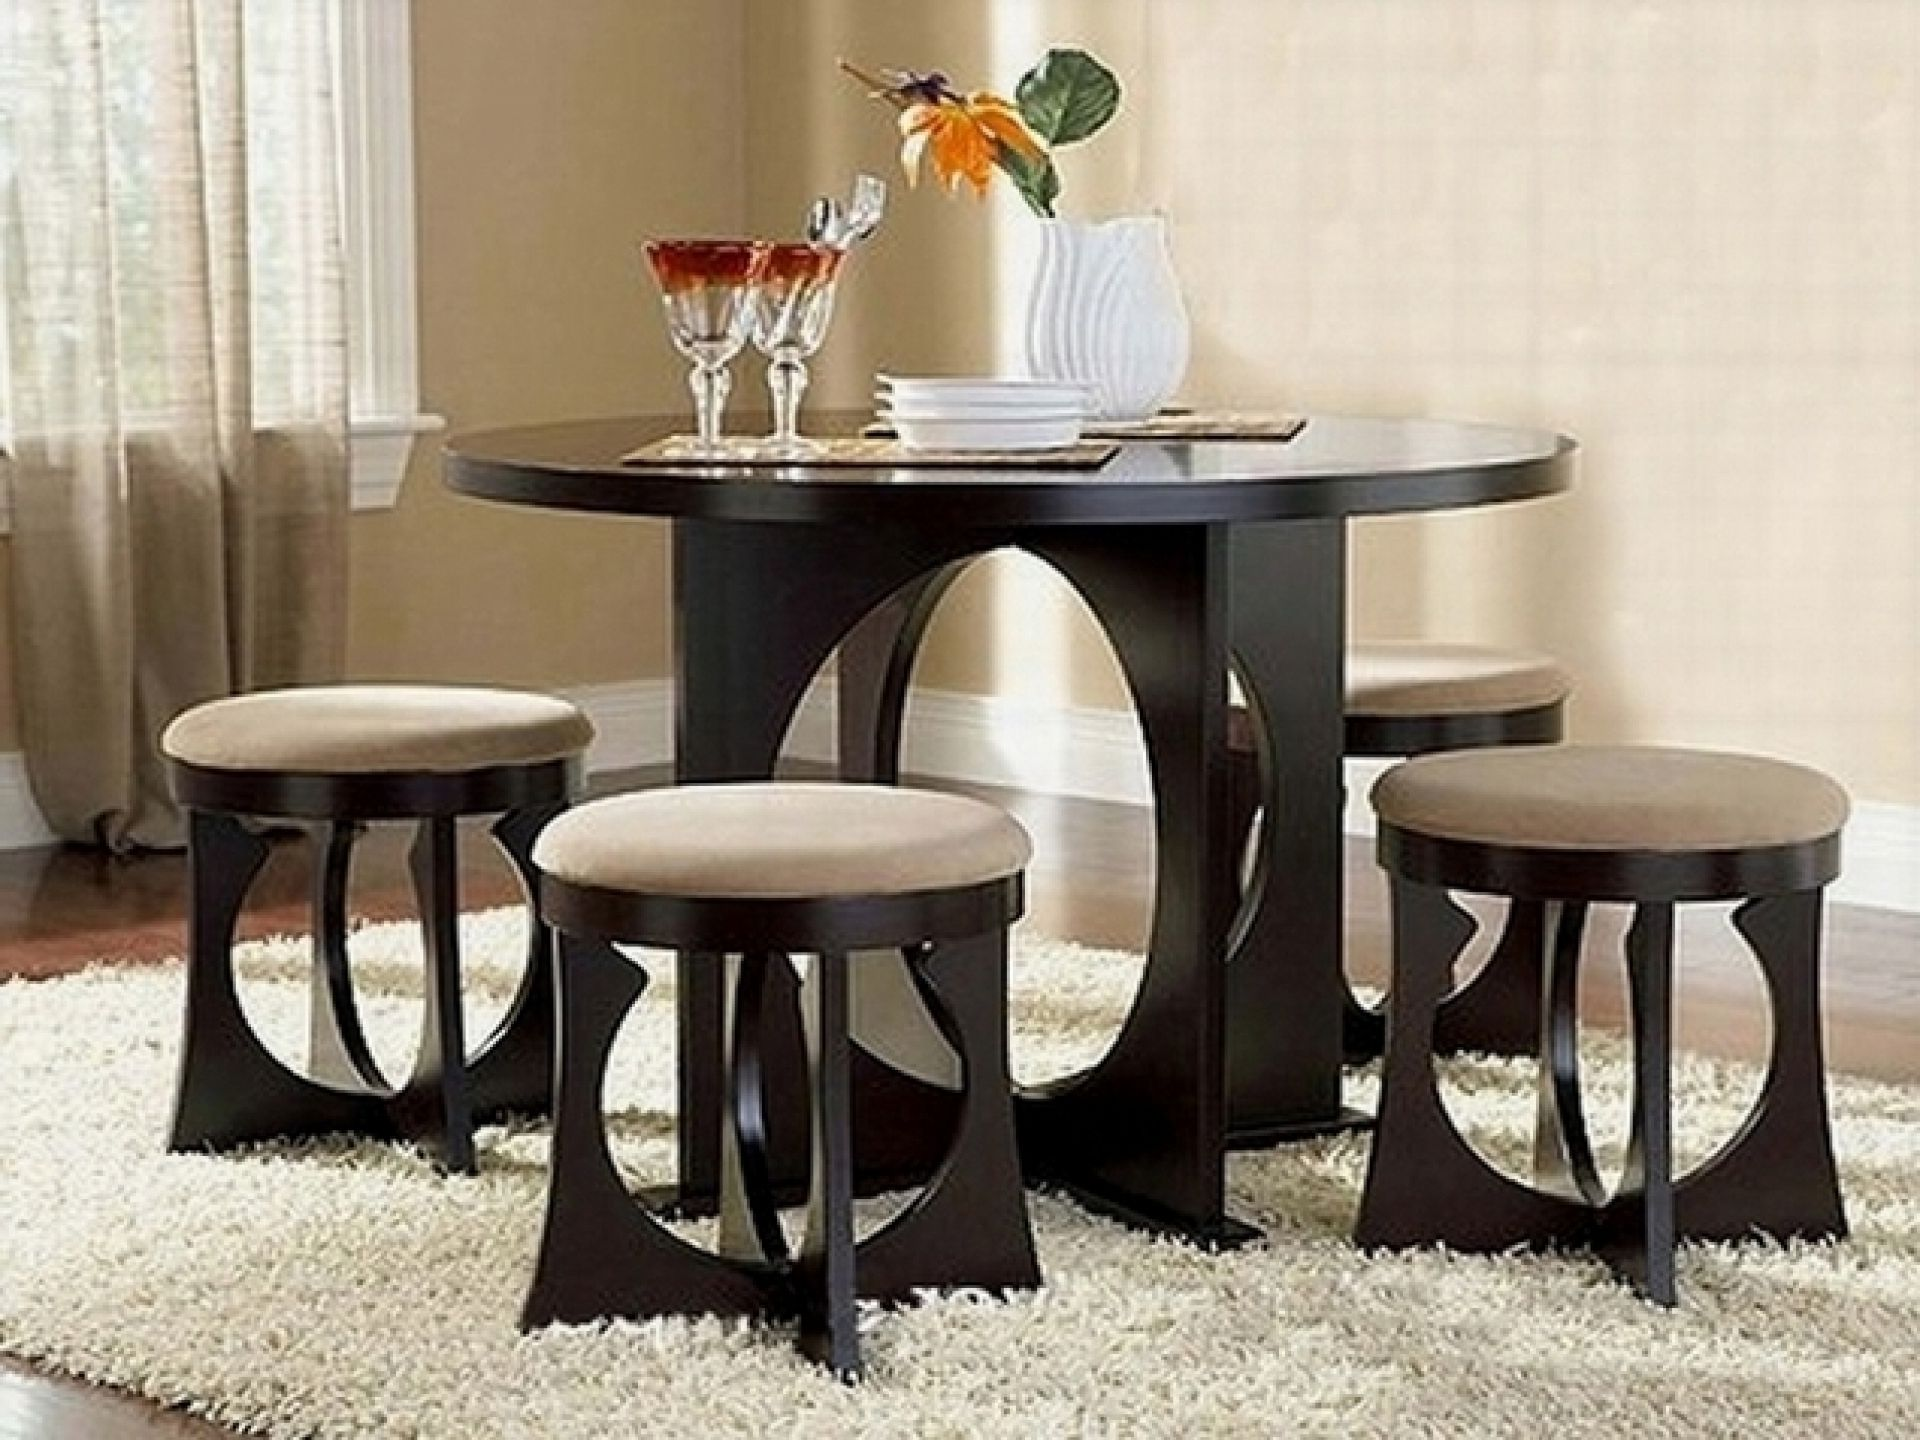 Round Or Rectangular Dining Table For Small Space  Http Inspiration Quality Dining Room Tables Design Inspiration